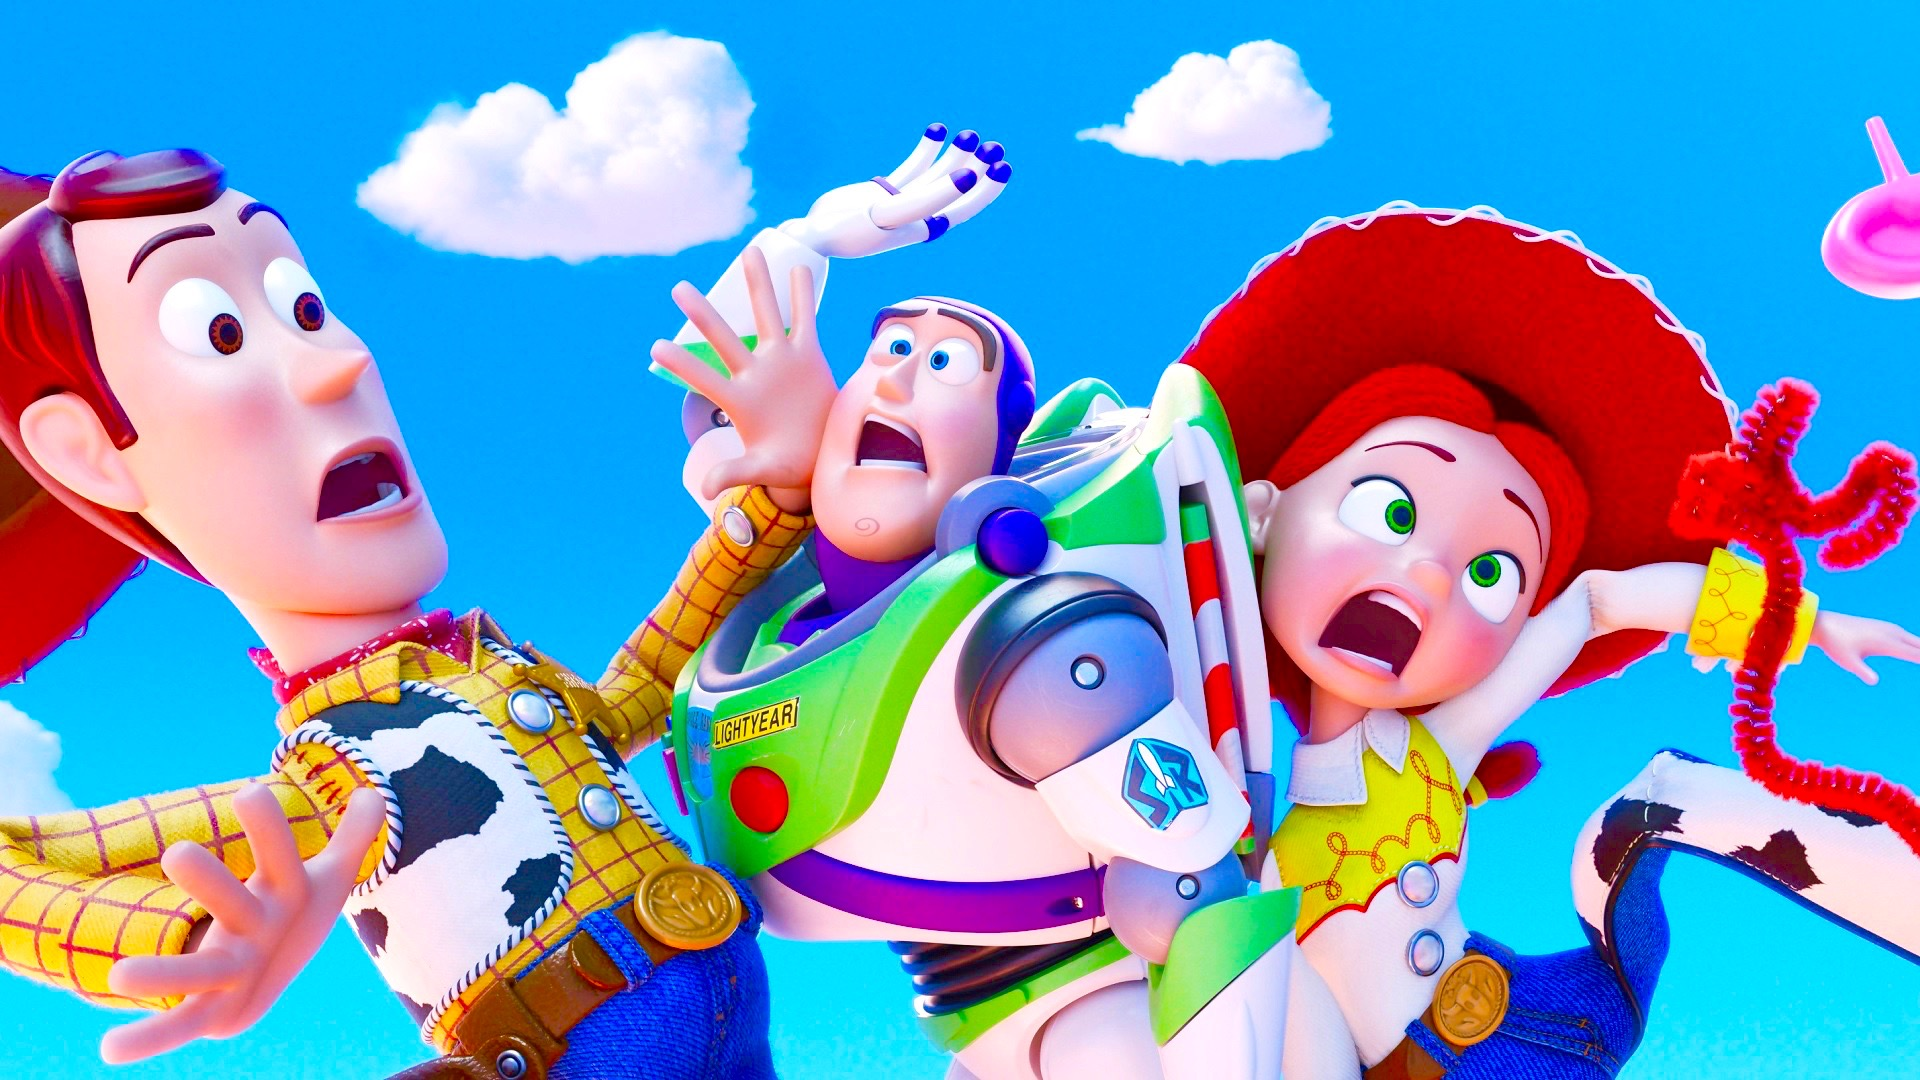 How To Find Good Quality Toy Story Wallpaper Online